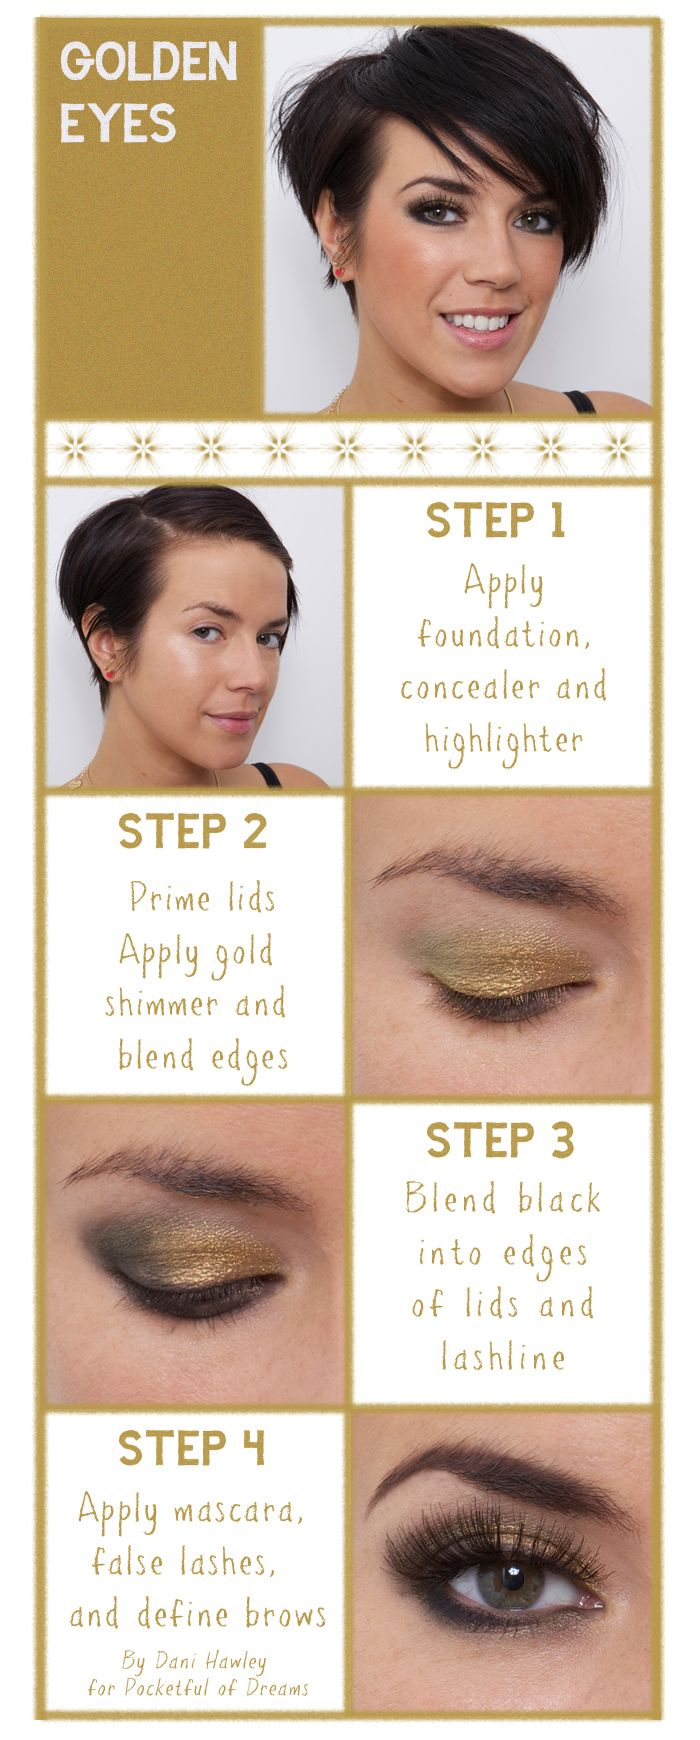 Beauty: A Golden Eyes Make-Up Tutorial by Dani Hawley exclusively for Pocketful of DreamsDiy Ideas, Golden Eye, Beautiful, Diy Tutorials, Makeup Ideas, Eye Make Up, Eye Tutorials, Diy Makeup, Eye Makeup Tutorials